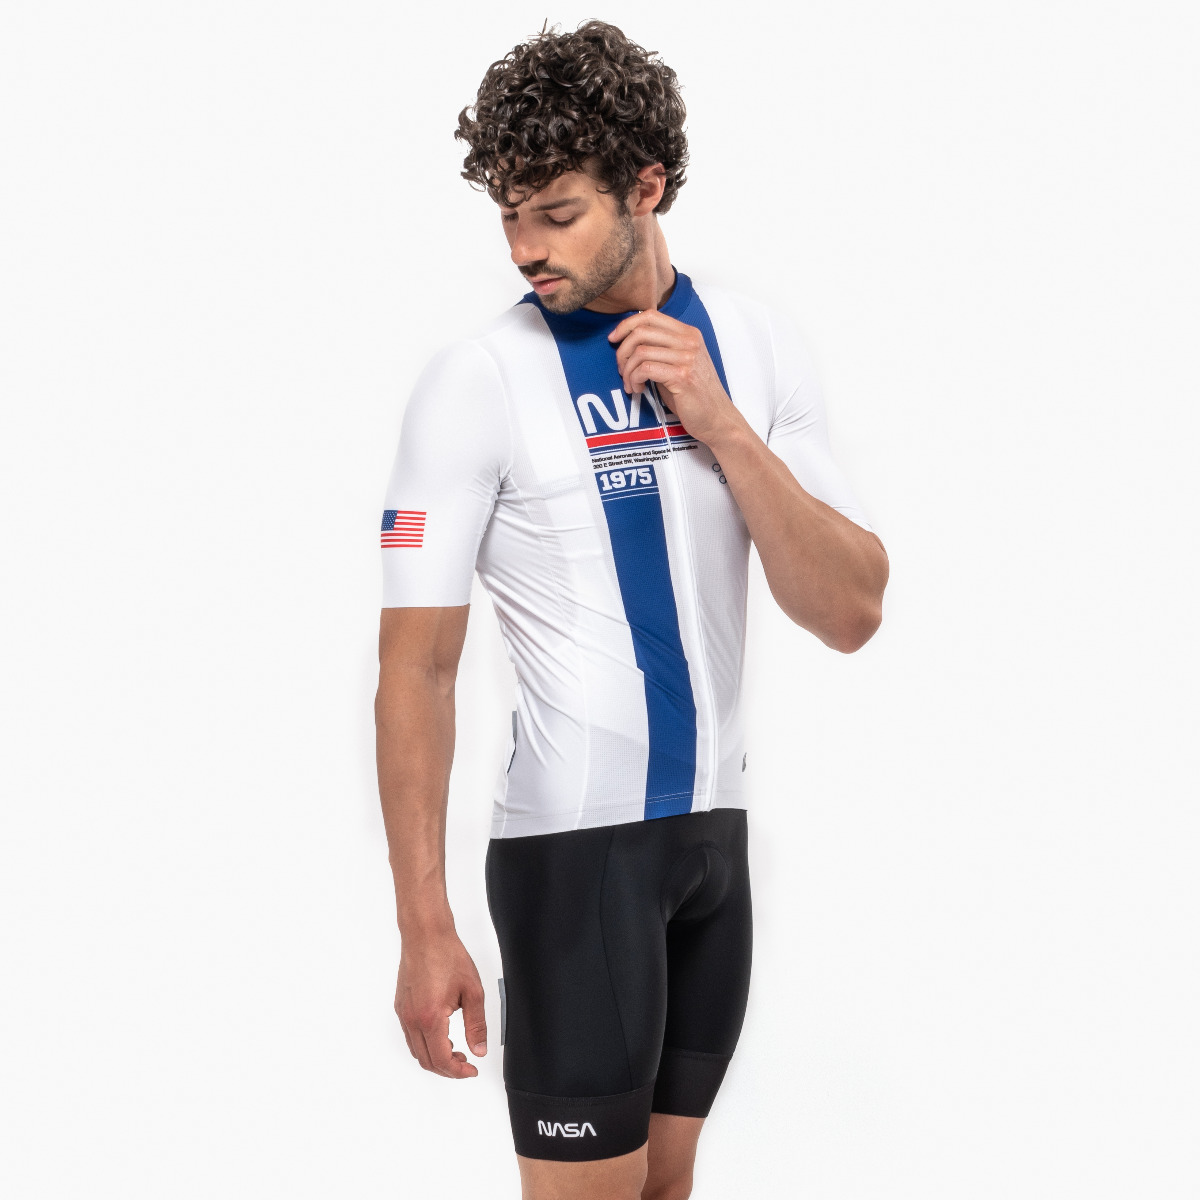 SPACE AGENCY X-OVER CYCLING JERSEY 08